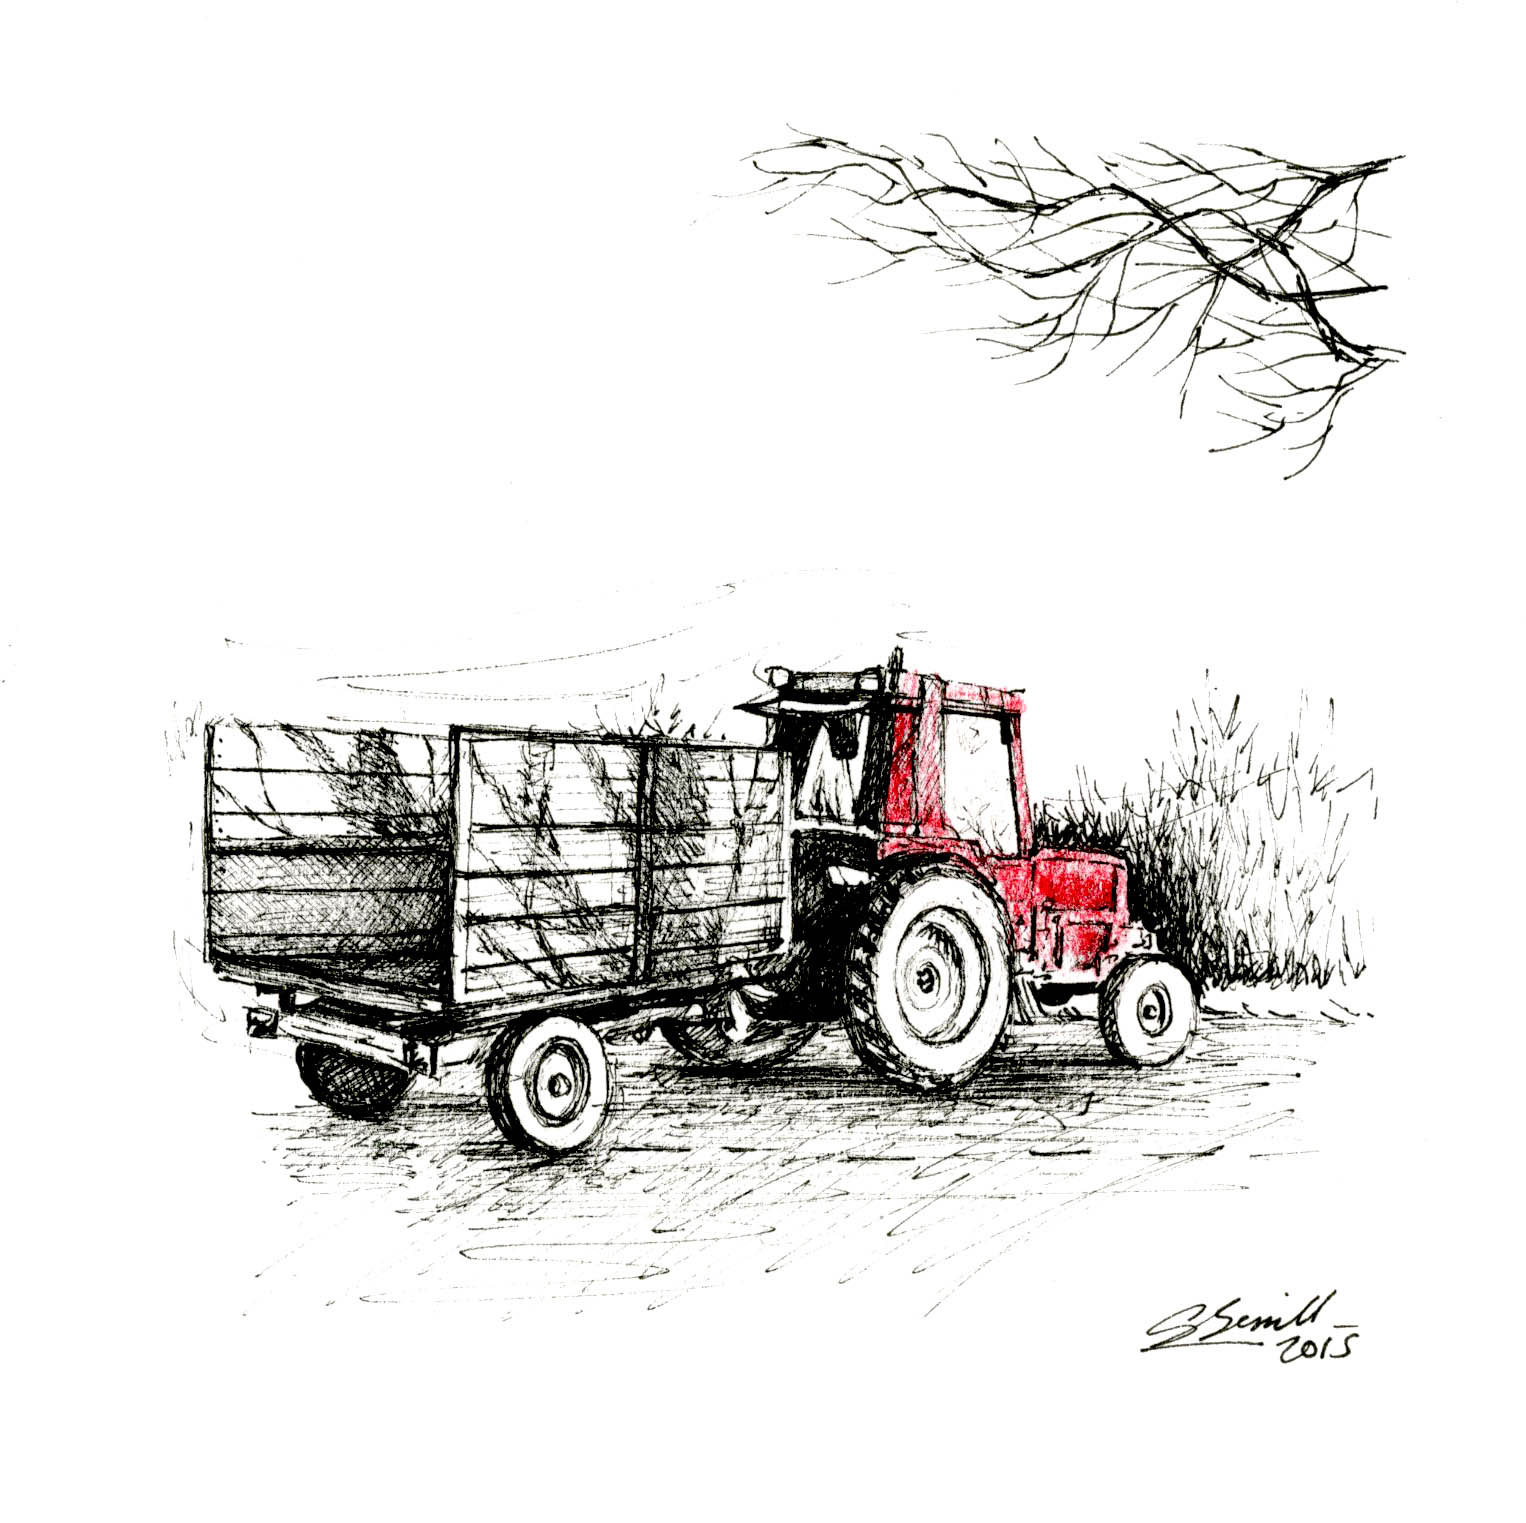 Red tractor_wood end_gail yerrill